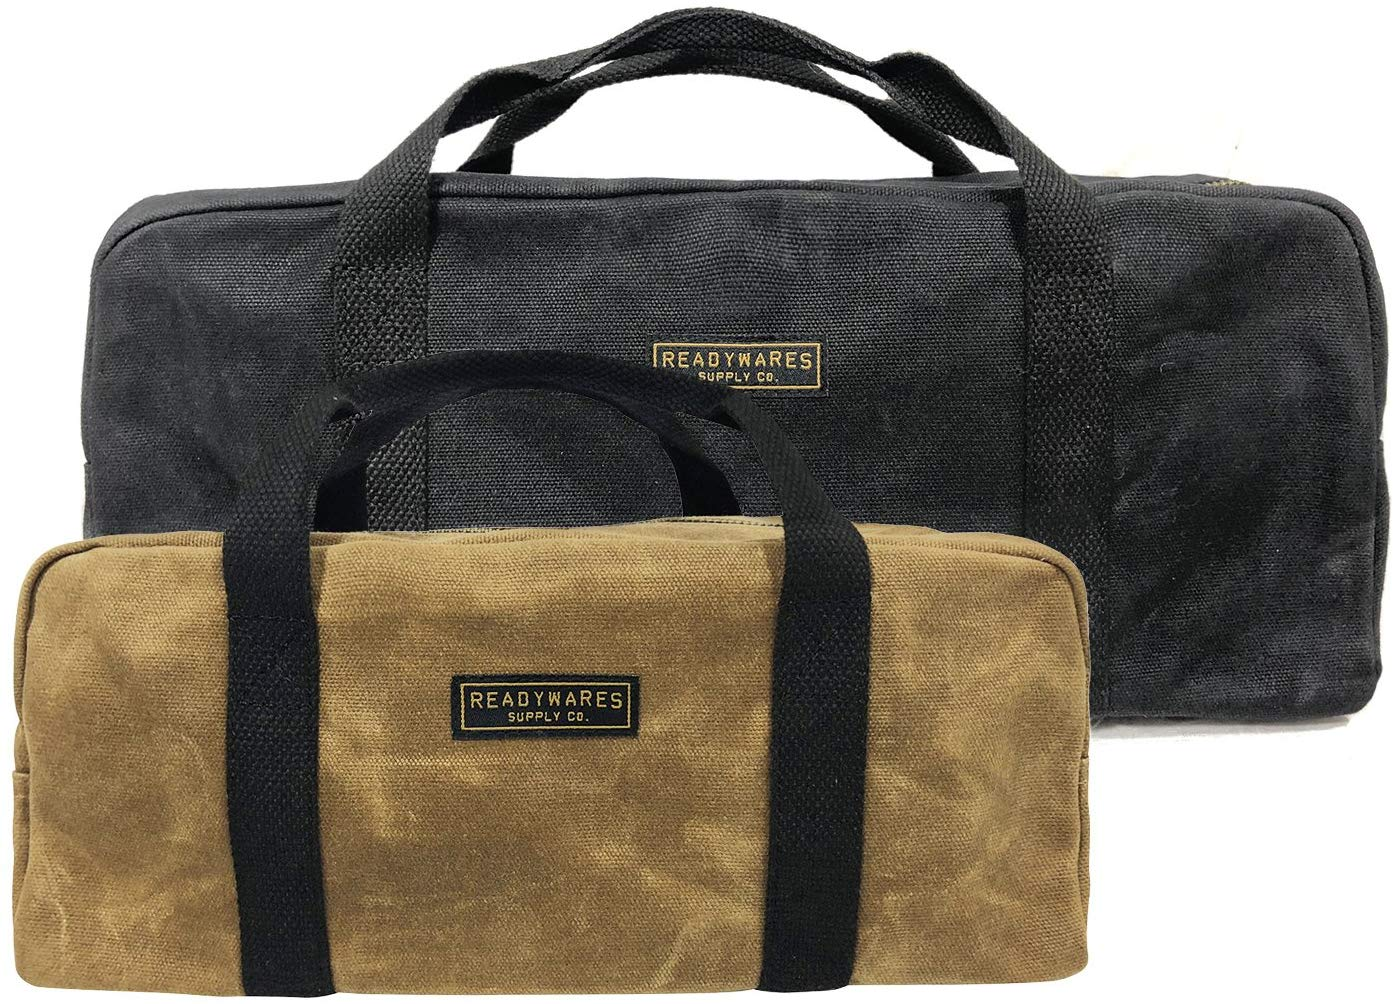 2-Pack Readywares Waxed Canvas Utility Bag